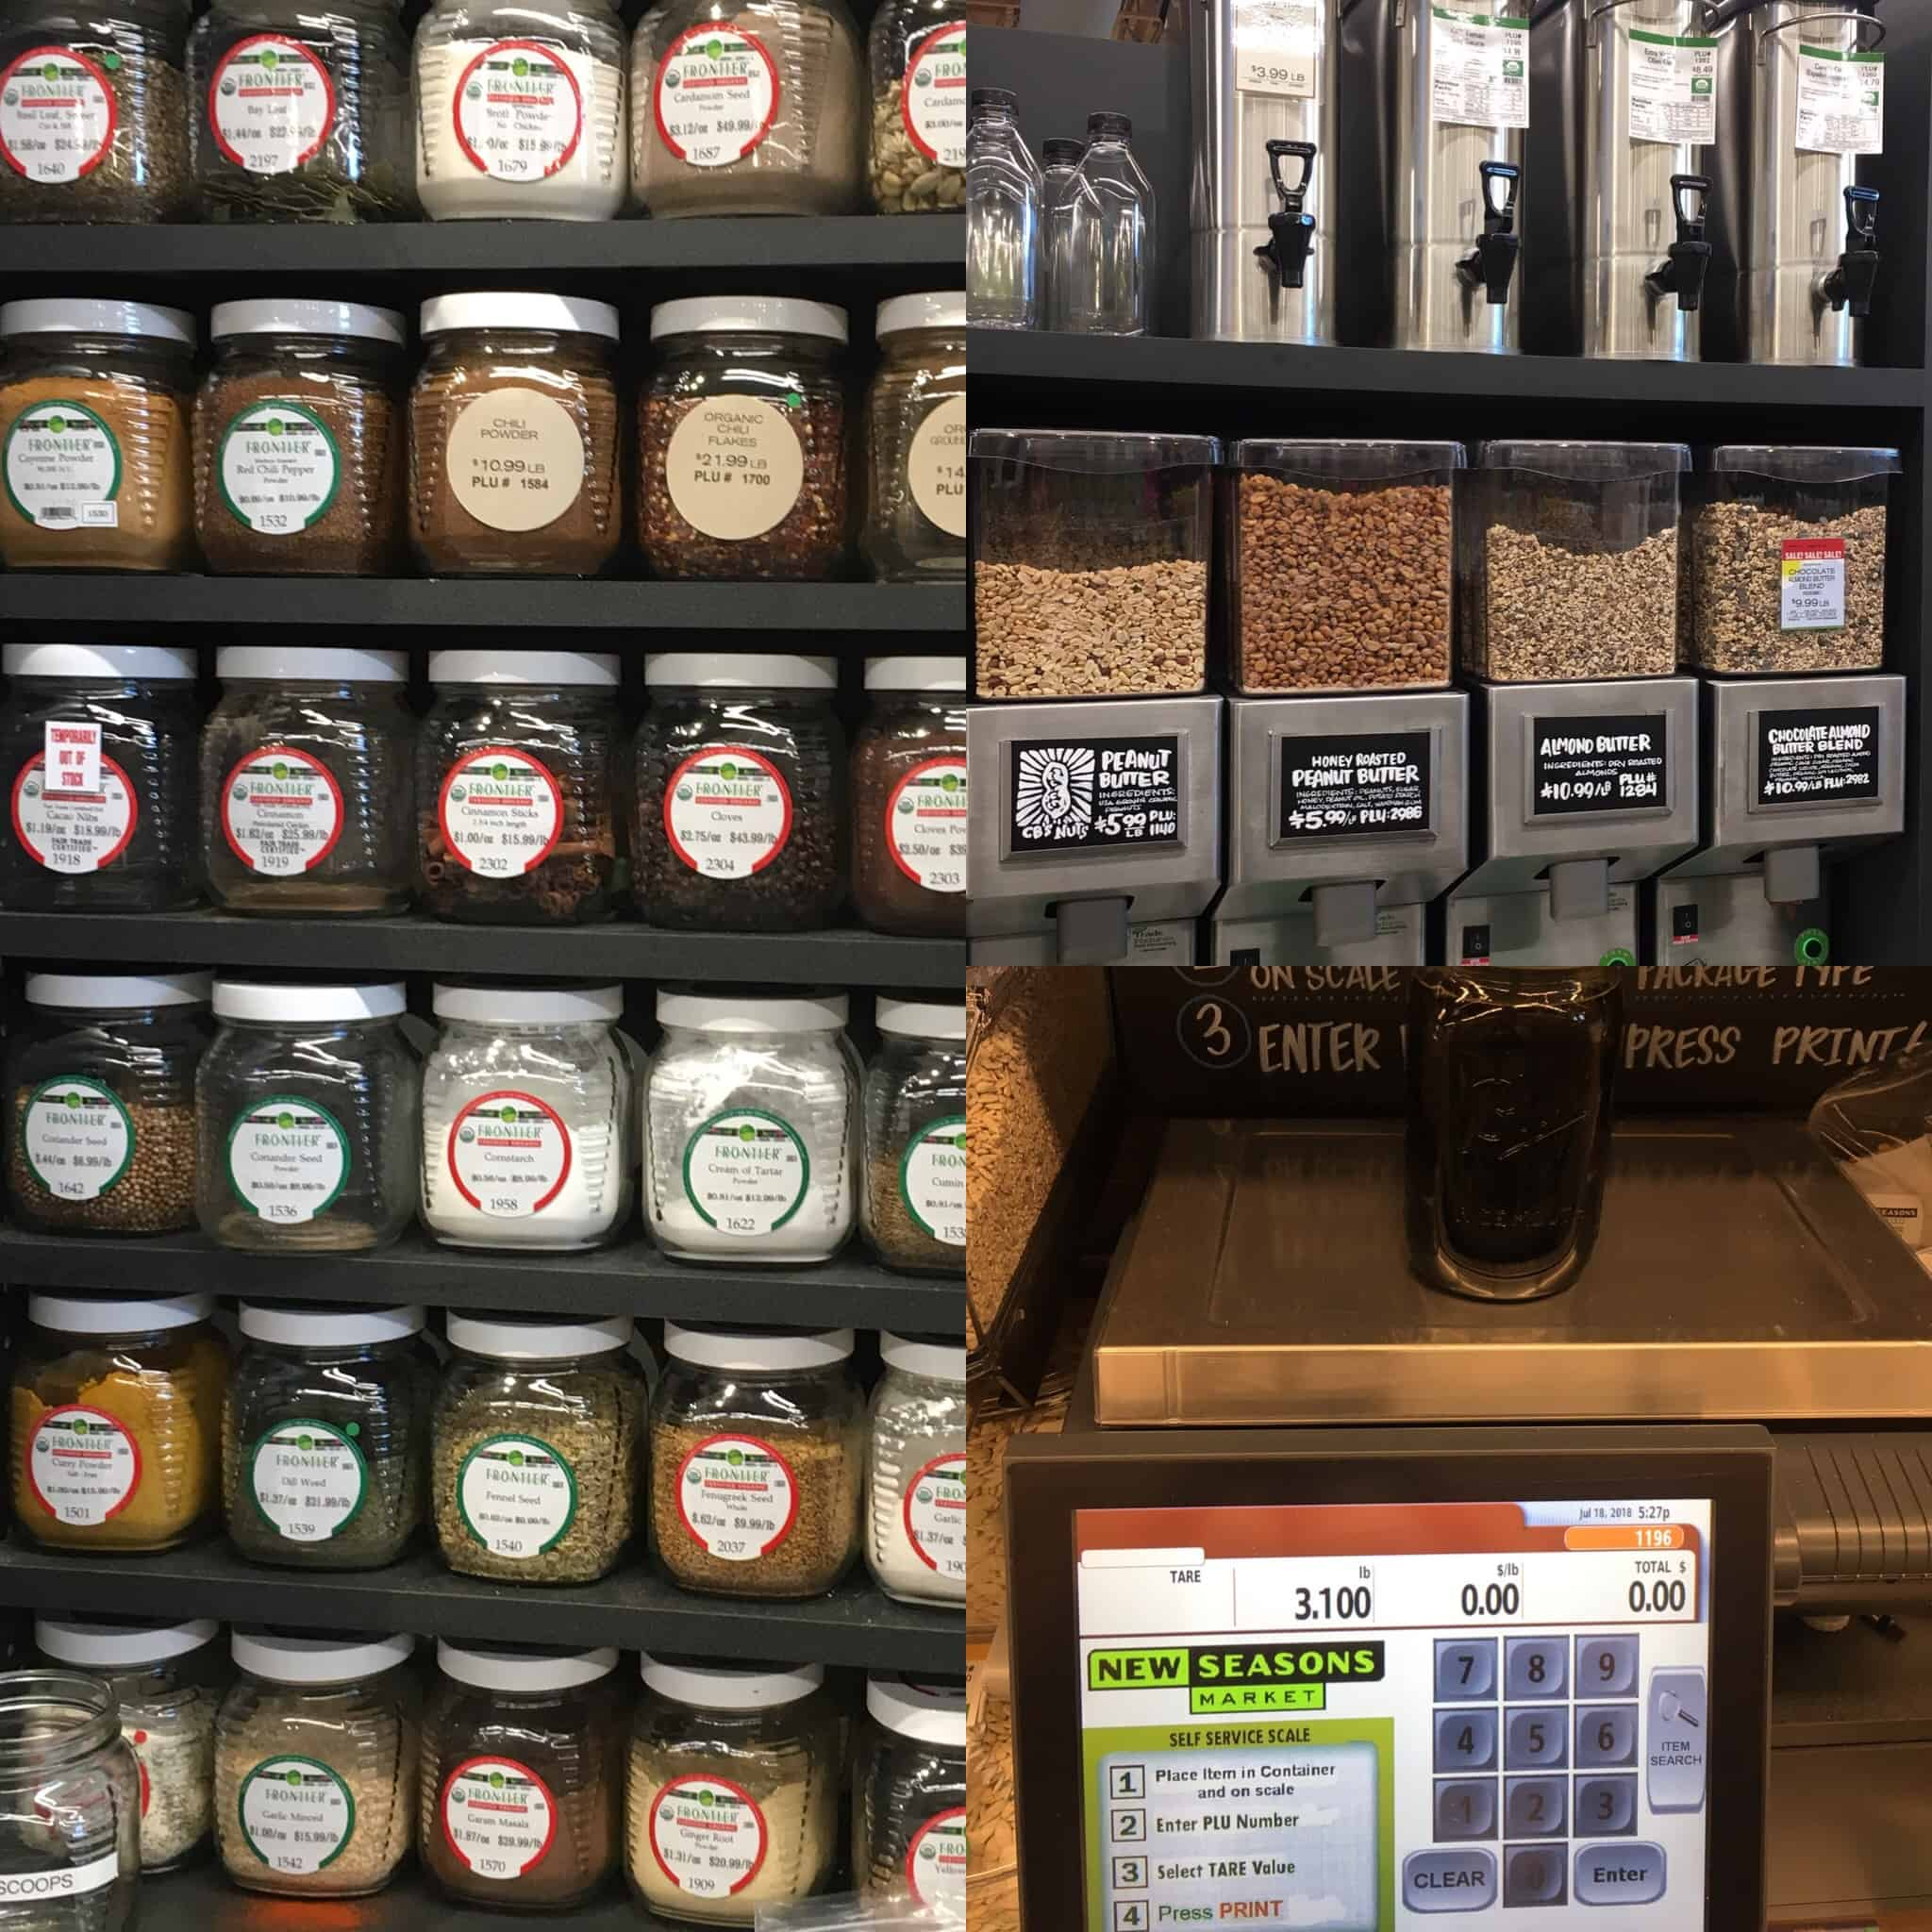 Photo collage of New Seasons Bulk Bin Offerings, including spices in glass jars; liquid dispensers, nut butter grinders, and tare weighing station. https://trimazing.com/